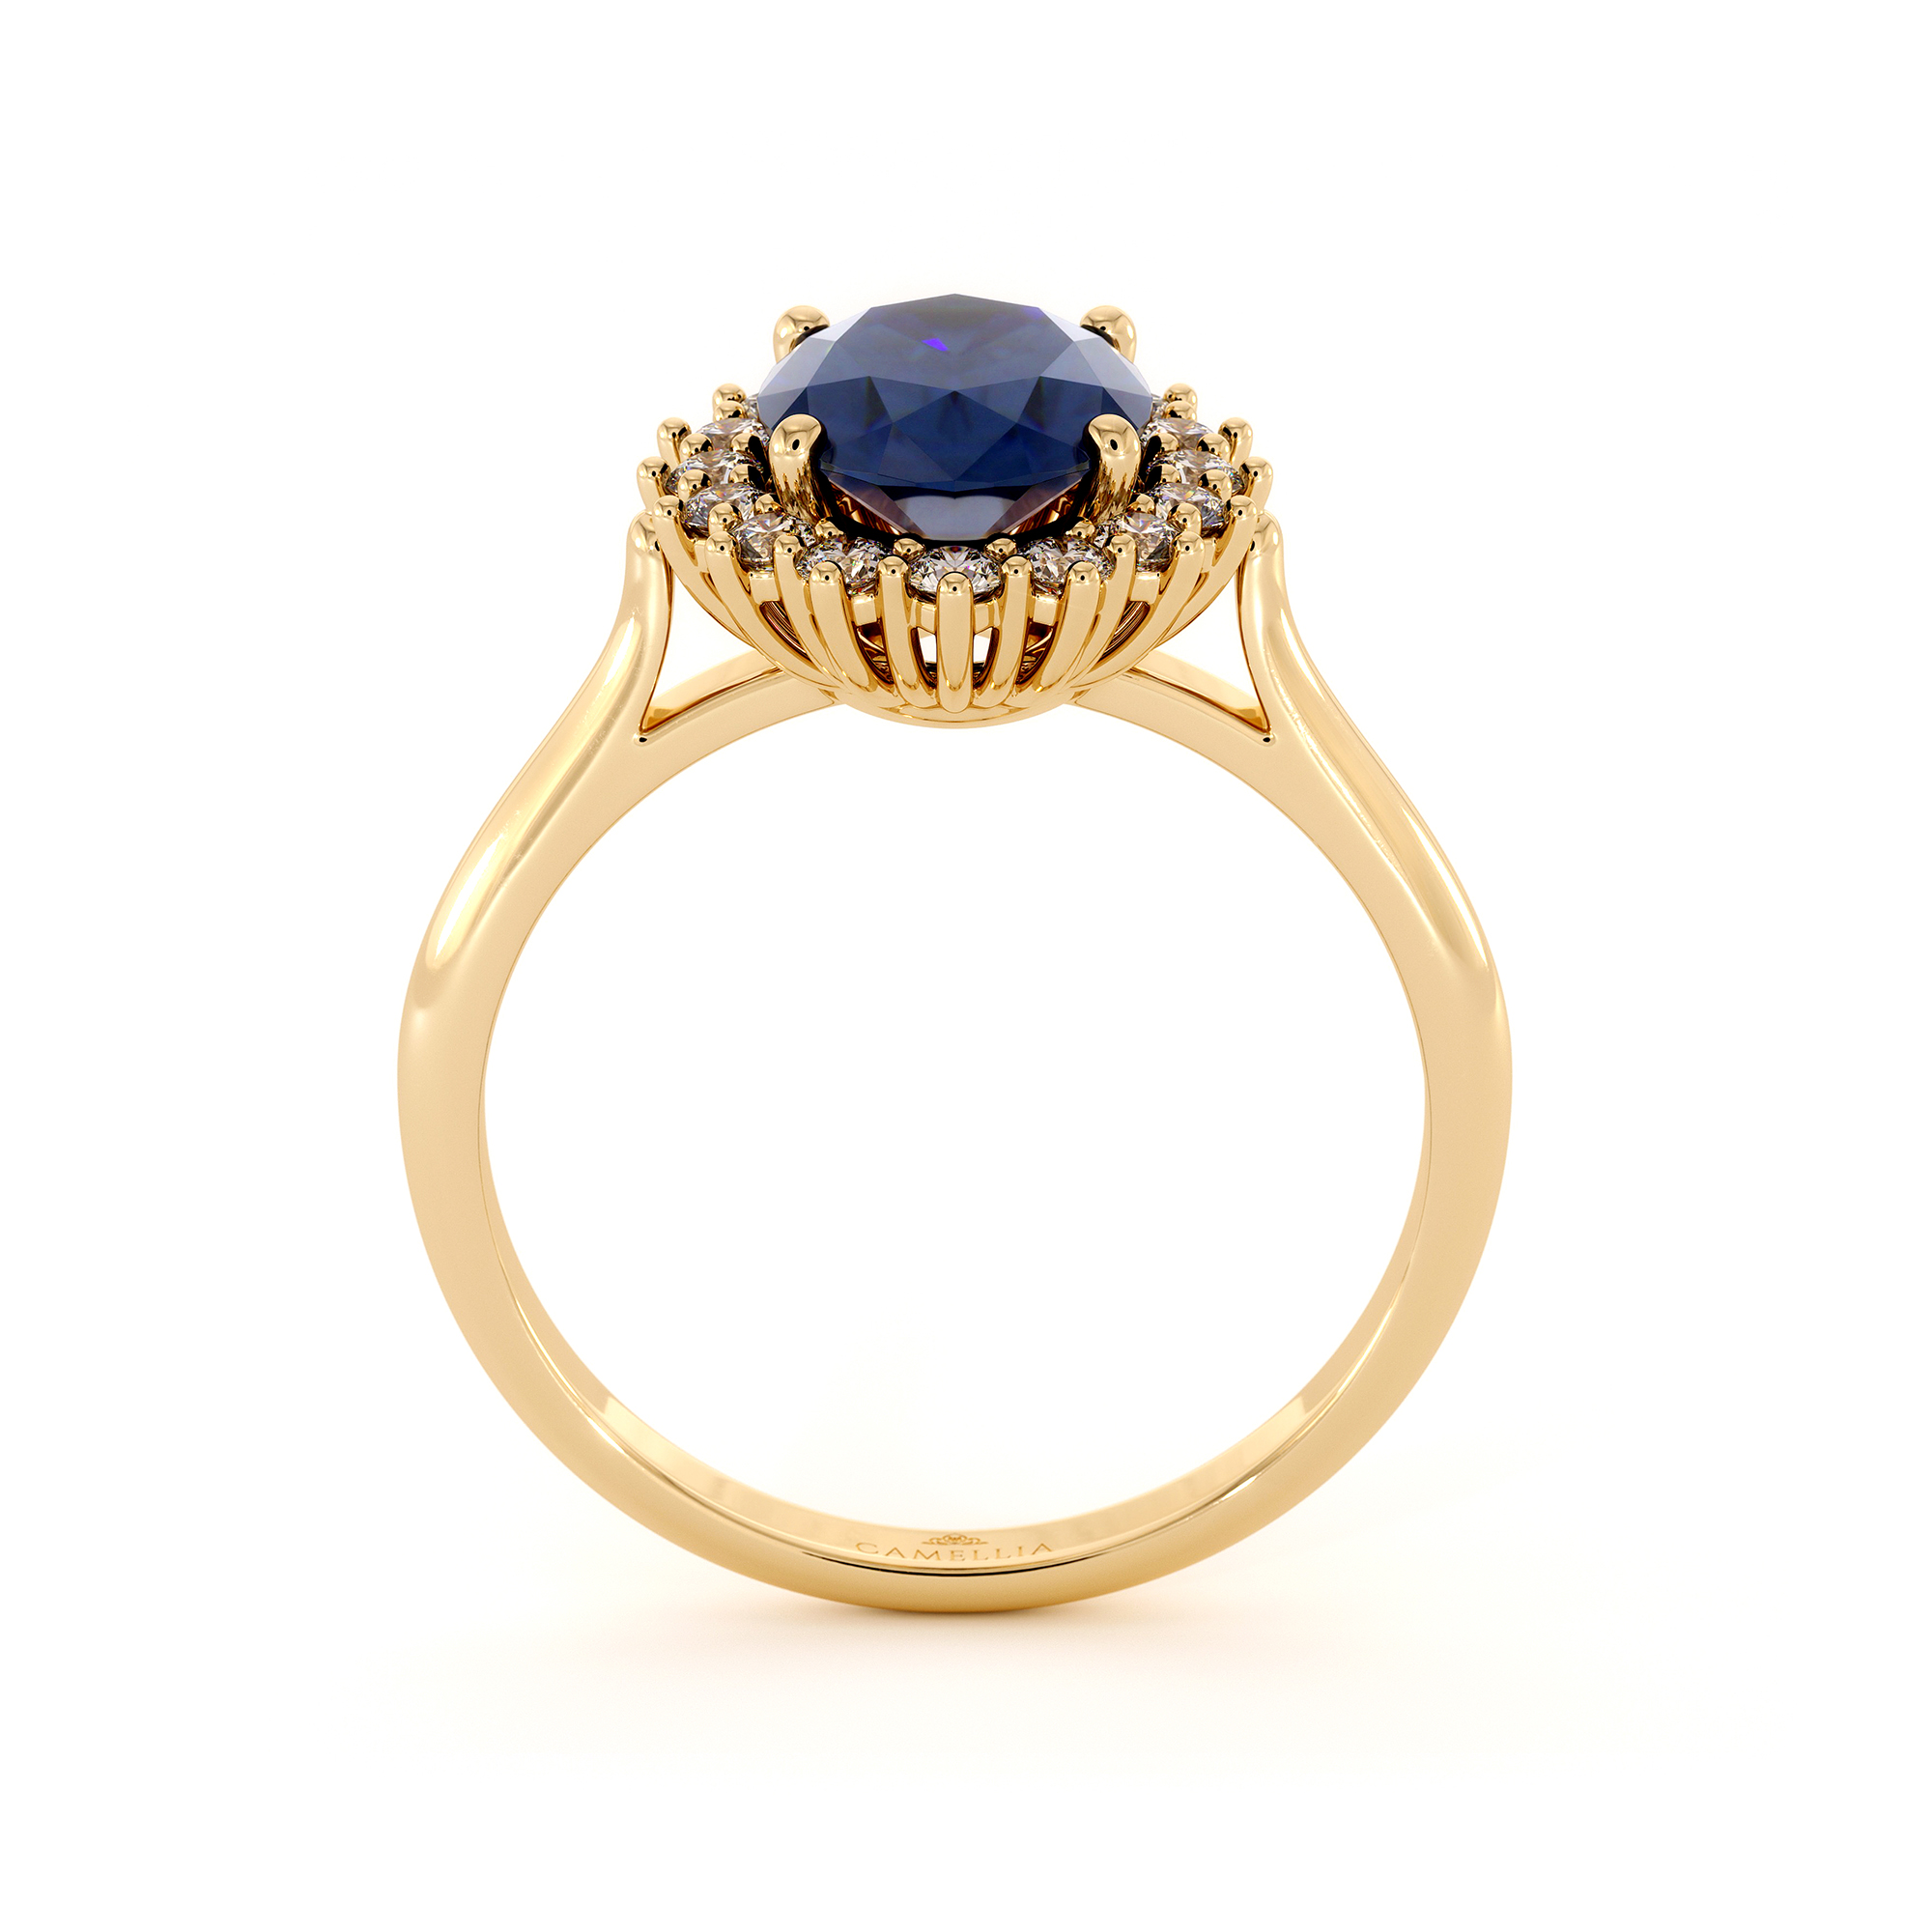 Diana Ring In 14K Yellow Gold Blue Sapphire Engagement Ring Vintage Inspired Princess Diana Gold Ring